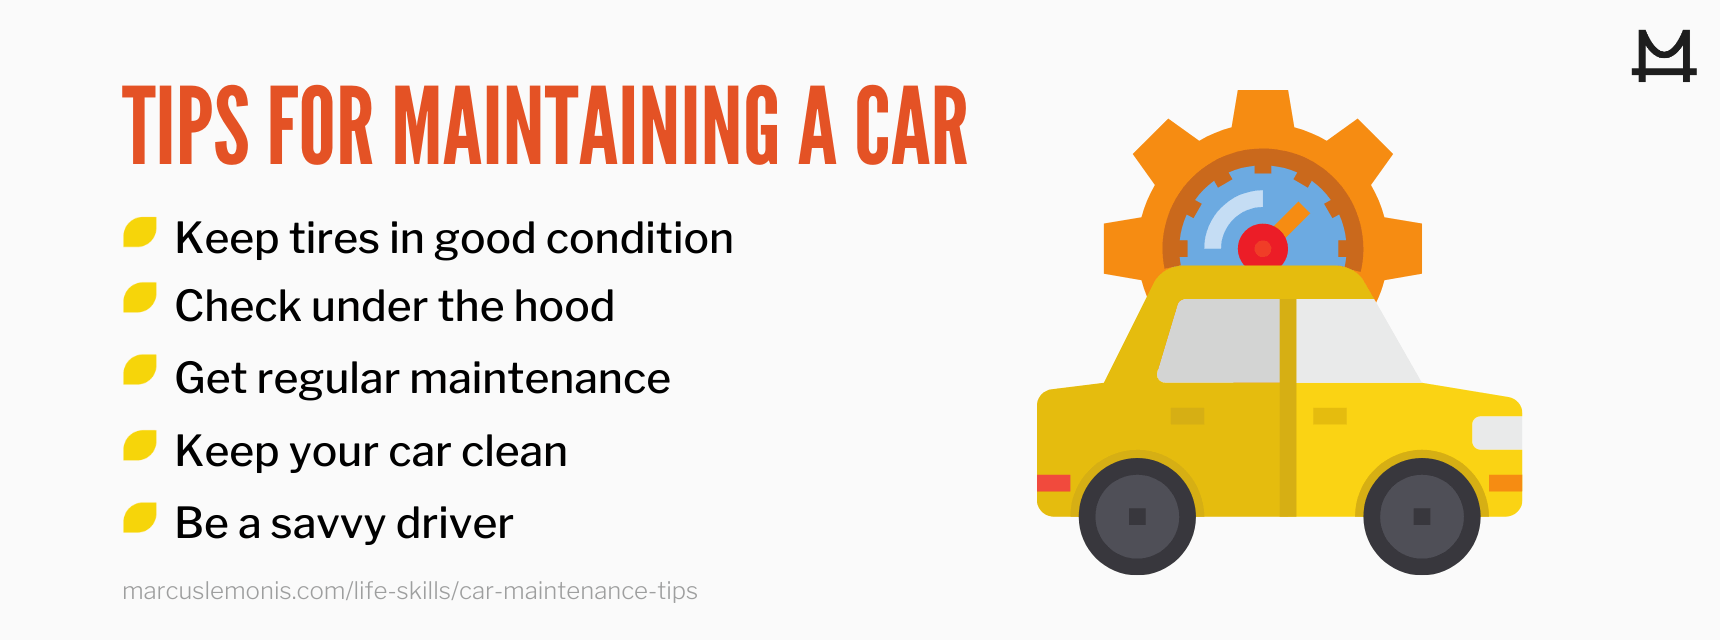 List of tips for maintaining a car.